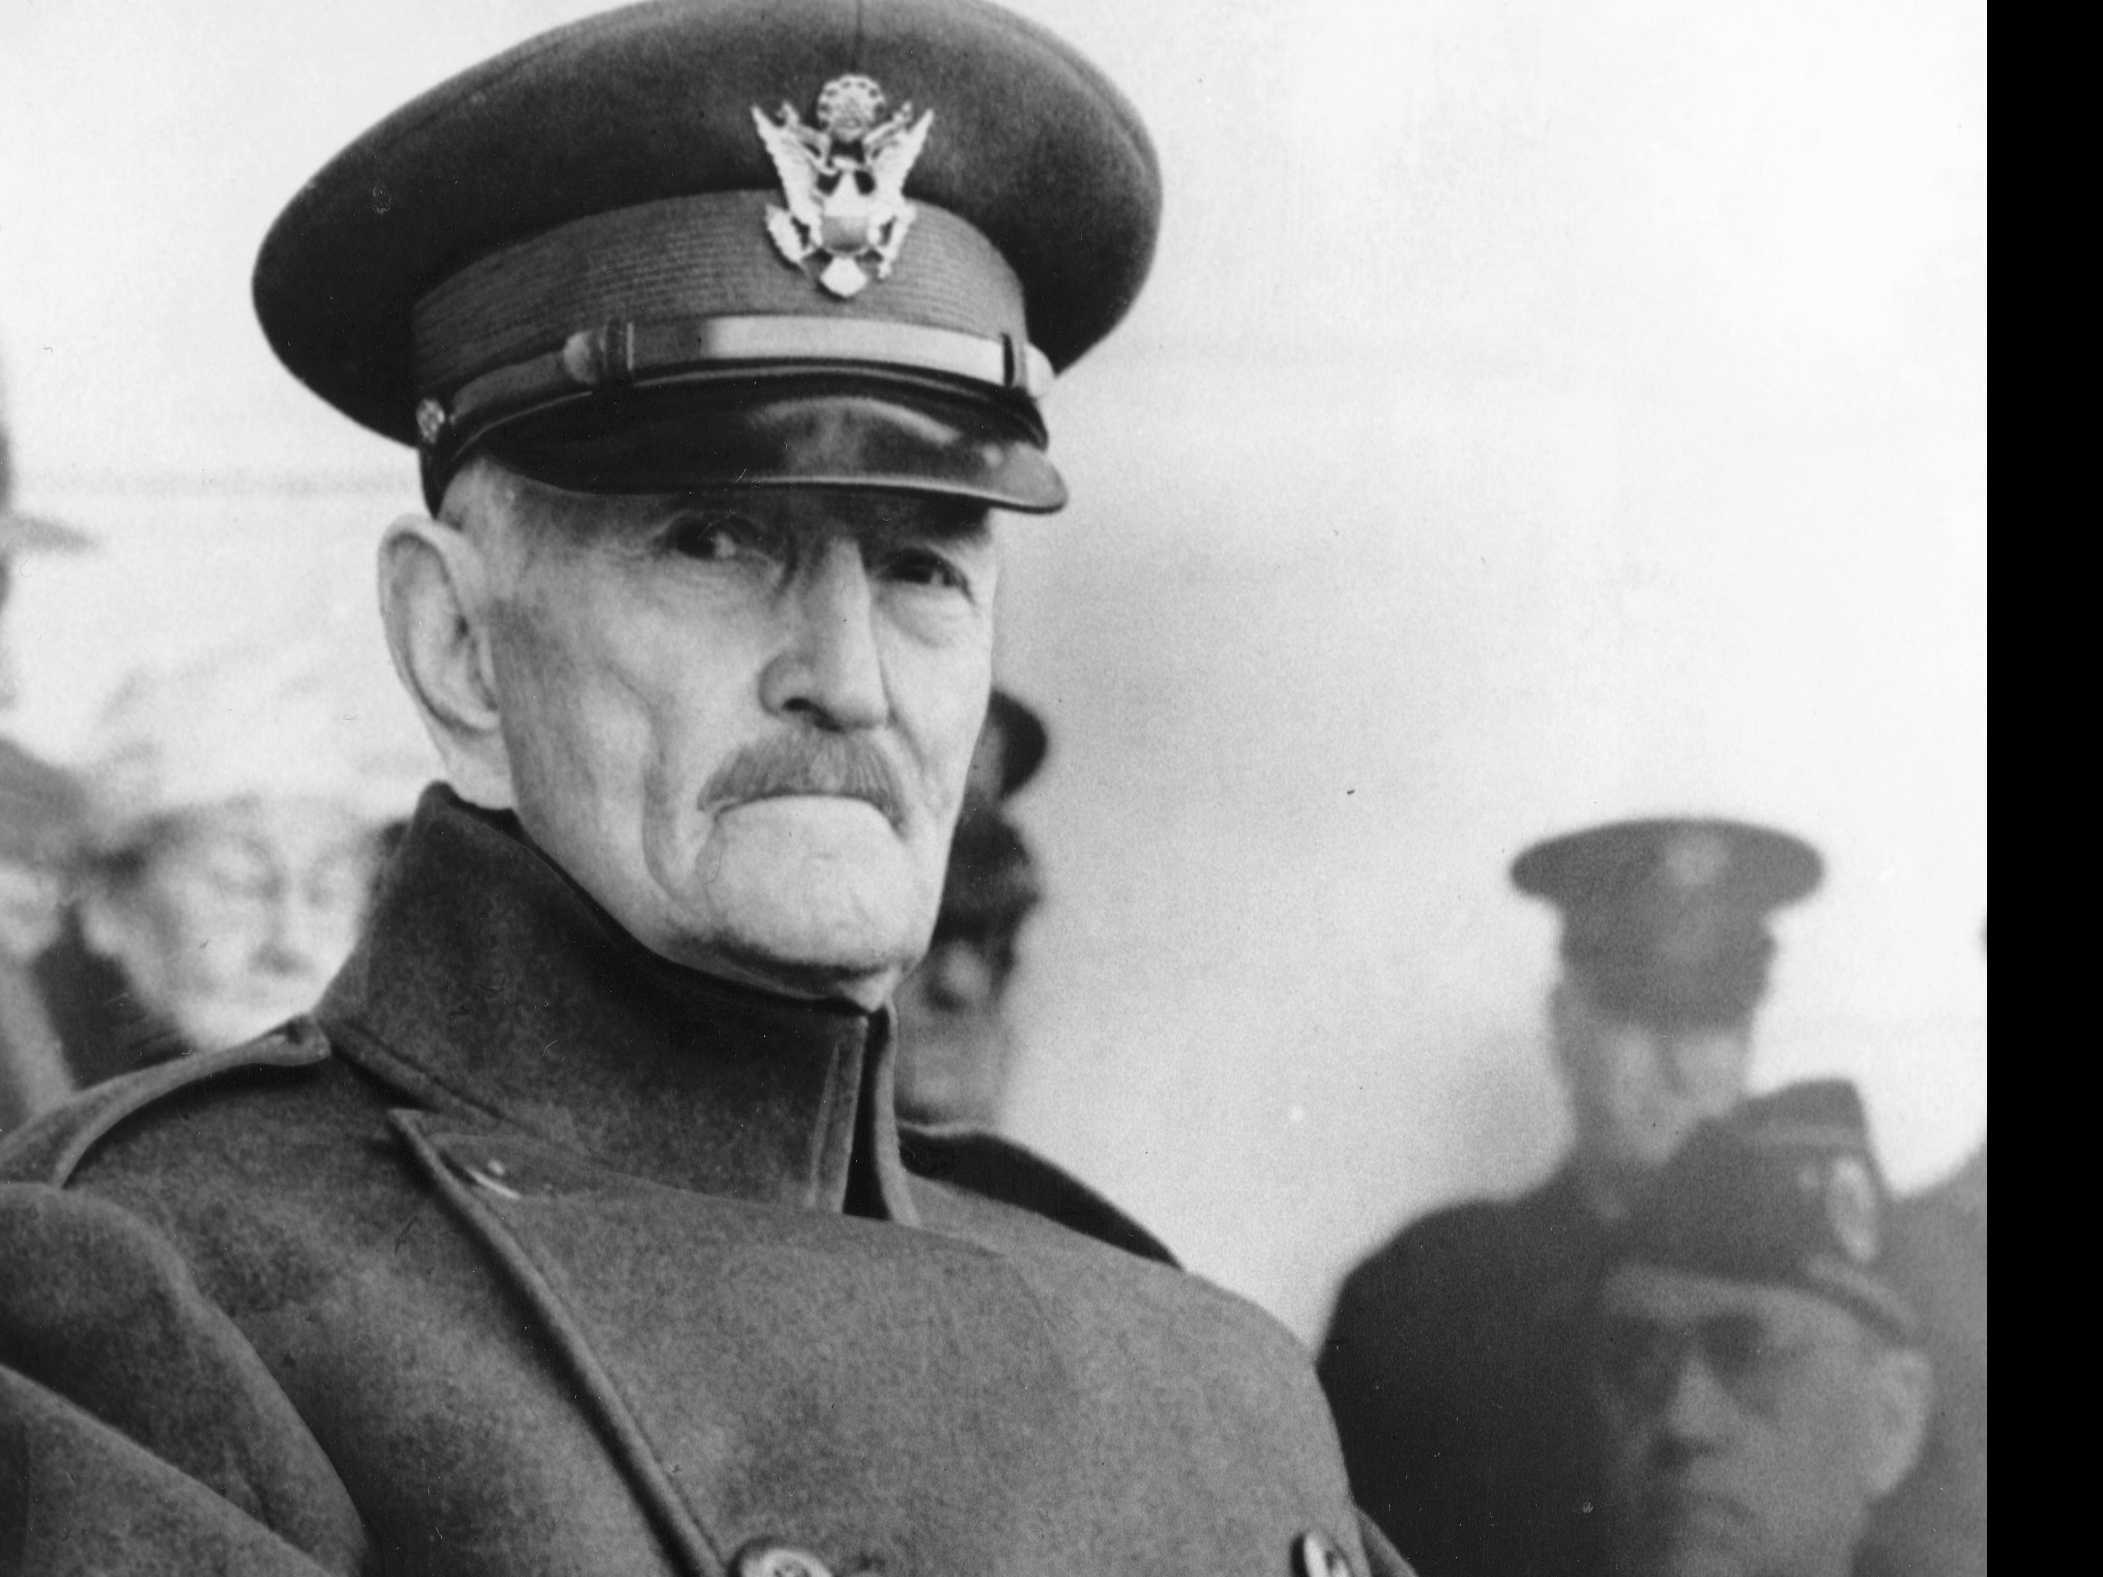 AP Explains: Why Does A WWI General Merit A Trump Tweet?